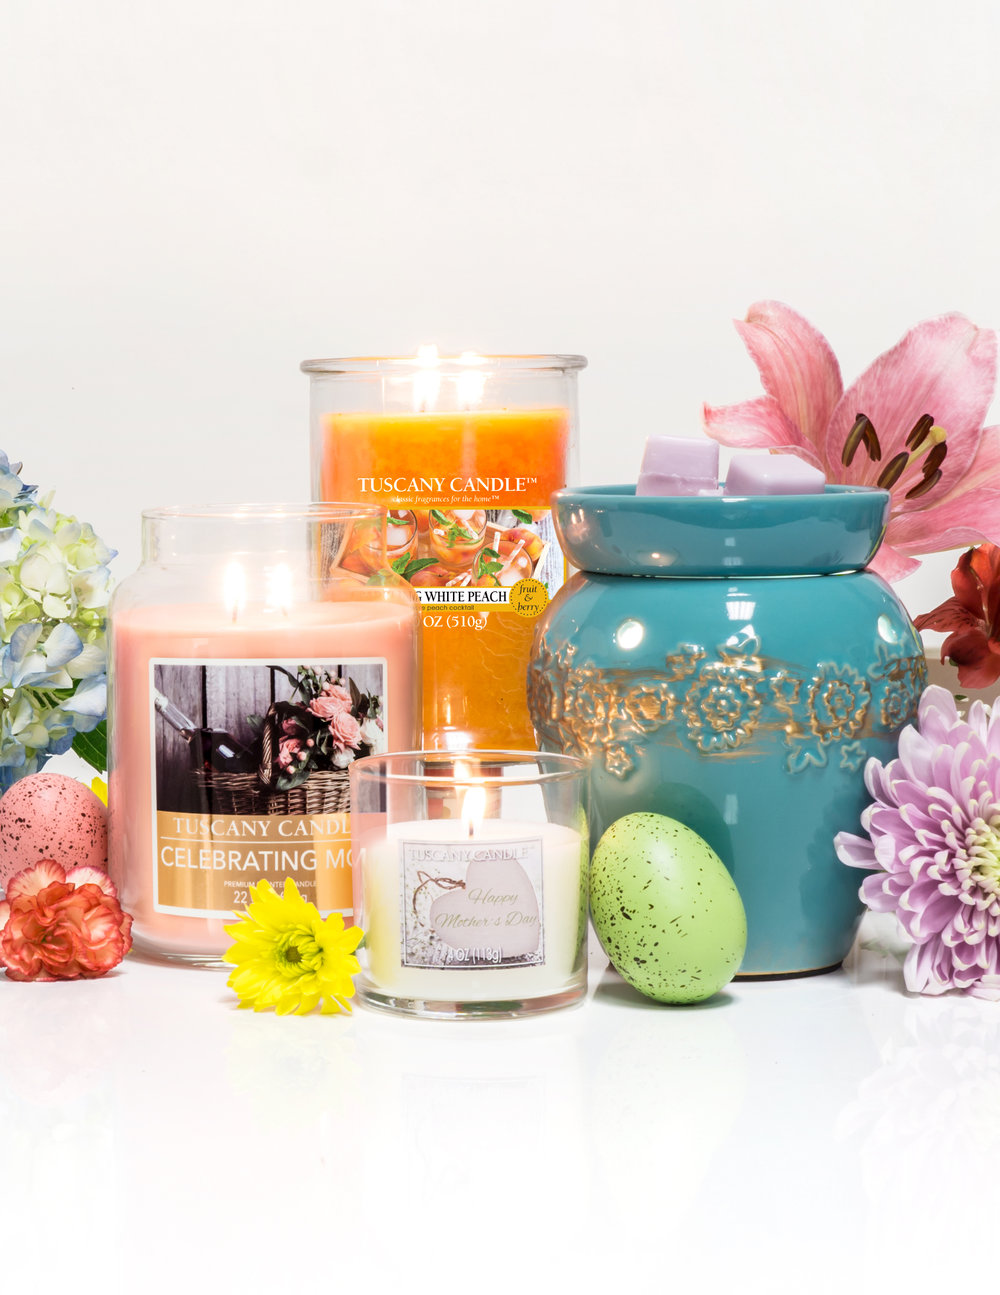 2018 Tuscany Candle Spring & Summer - Deadline for orders/commitments is Sept. 06, 2017.First available ship date is Jan. 20, 2018.